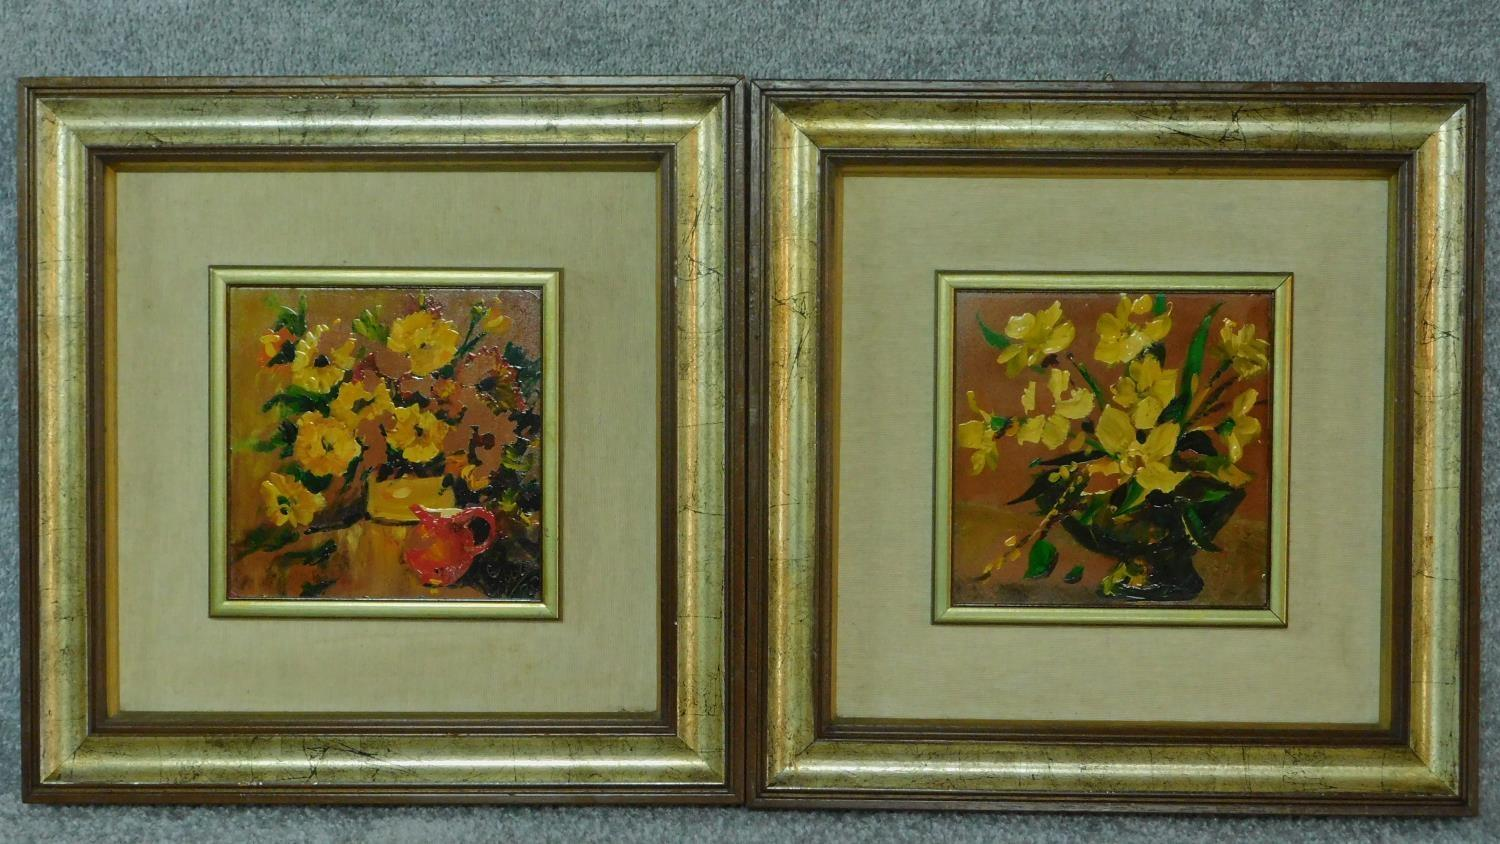 A pair of framed oils on board, still life flowers, monogrammed. 45x45cm (some paint flaking)